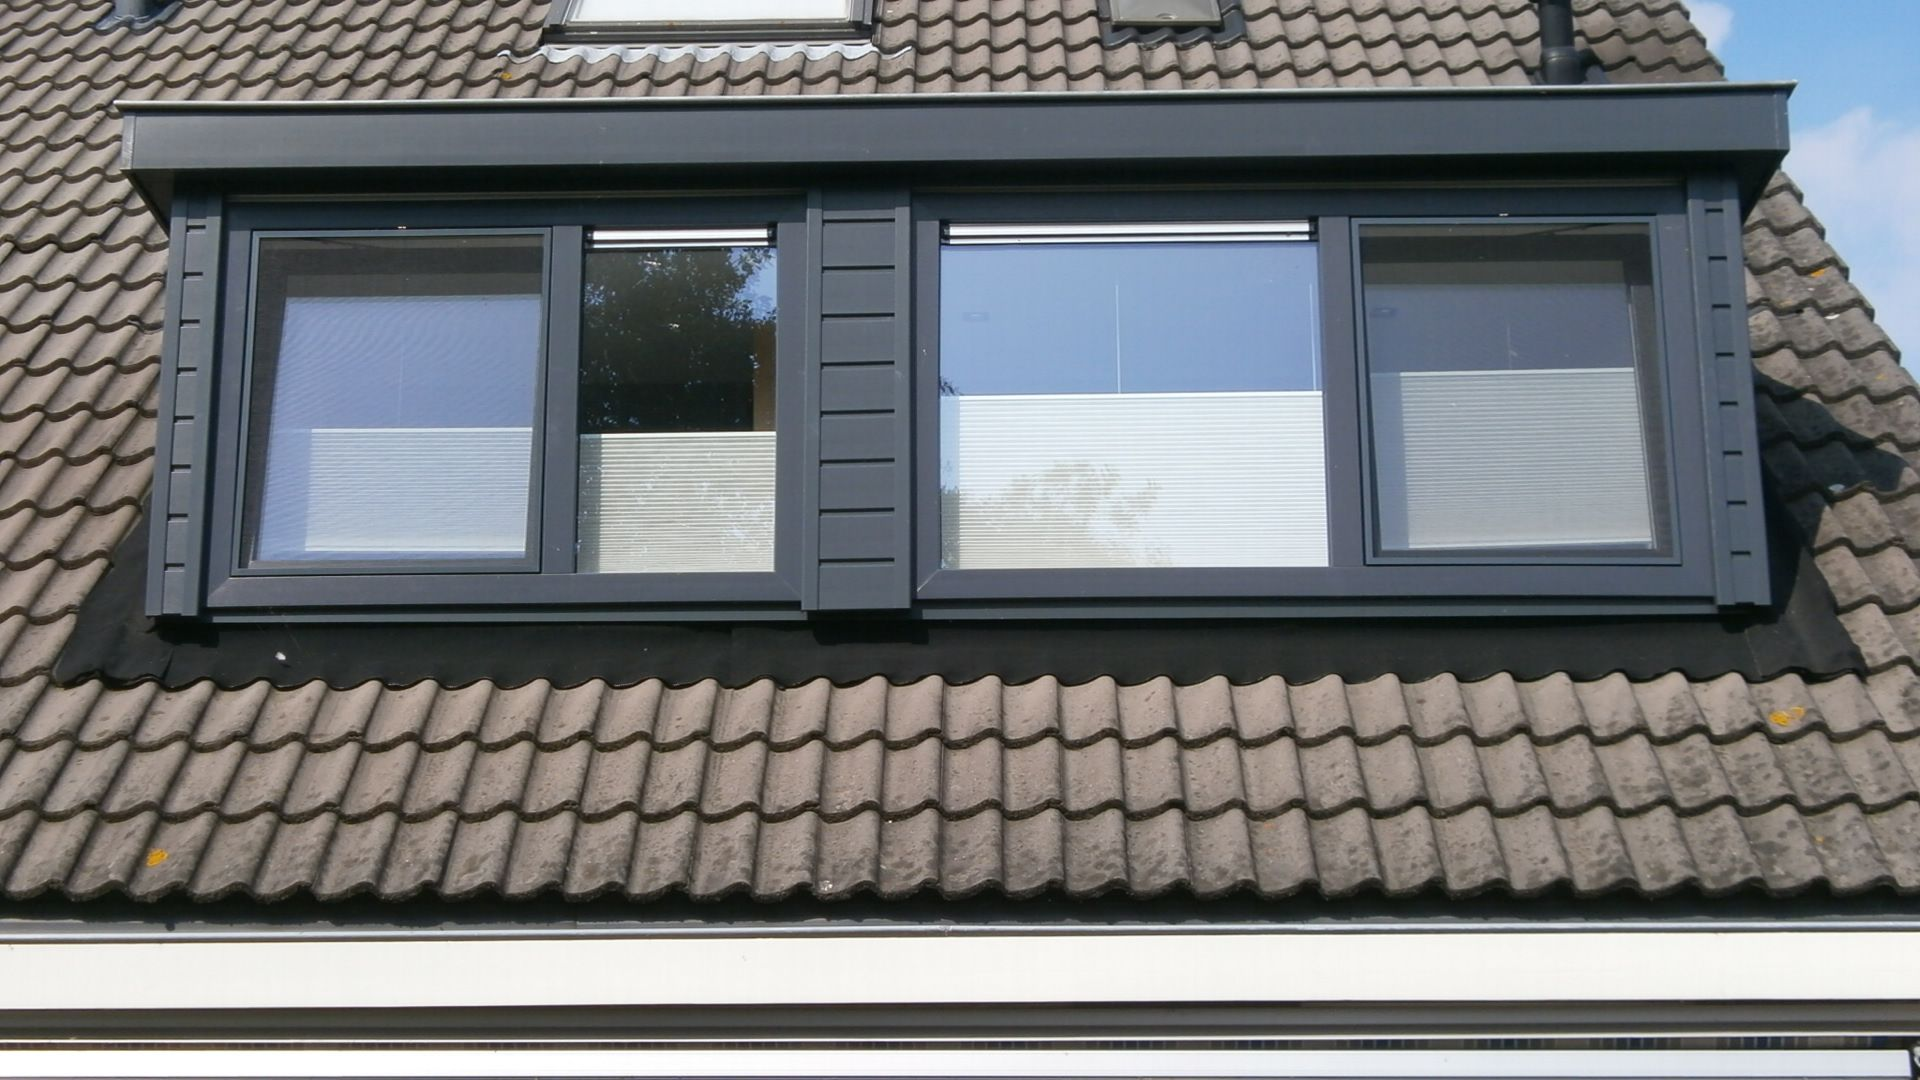 Dormer window ideas  dakkapel antraciet  home  pinterest  dormer ideas dormer windows